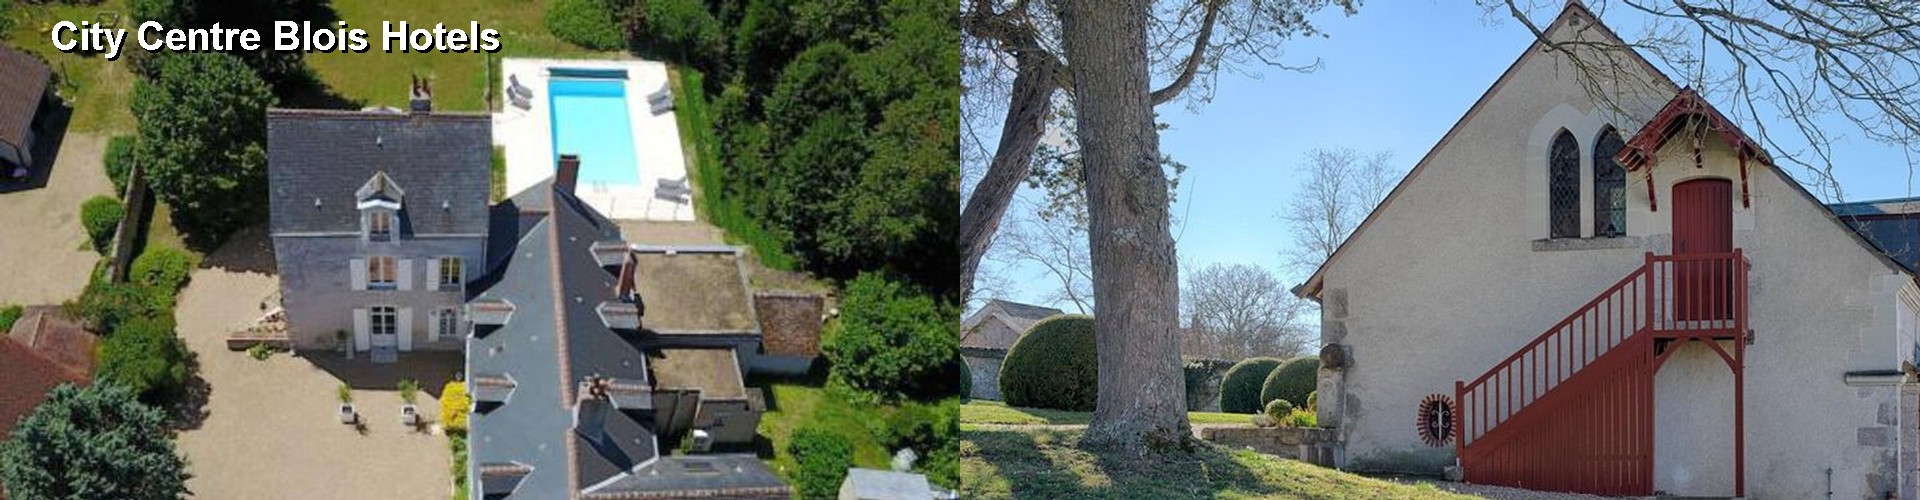 5 Best Hotels near City Centre Blois